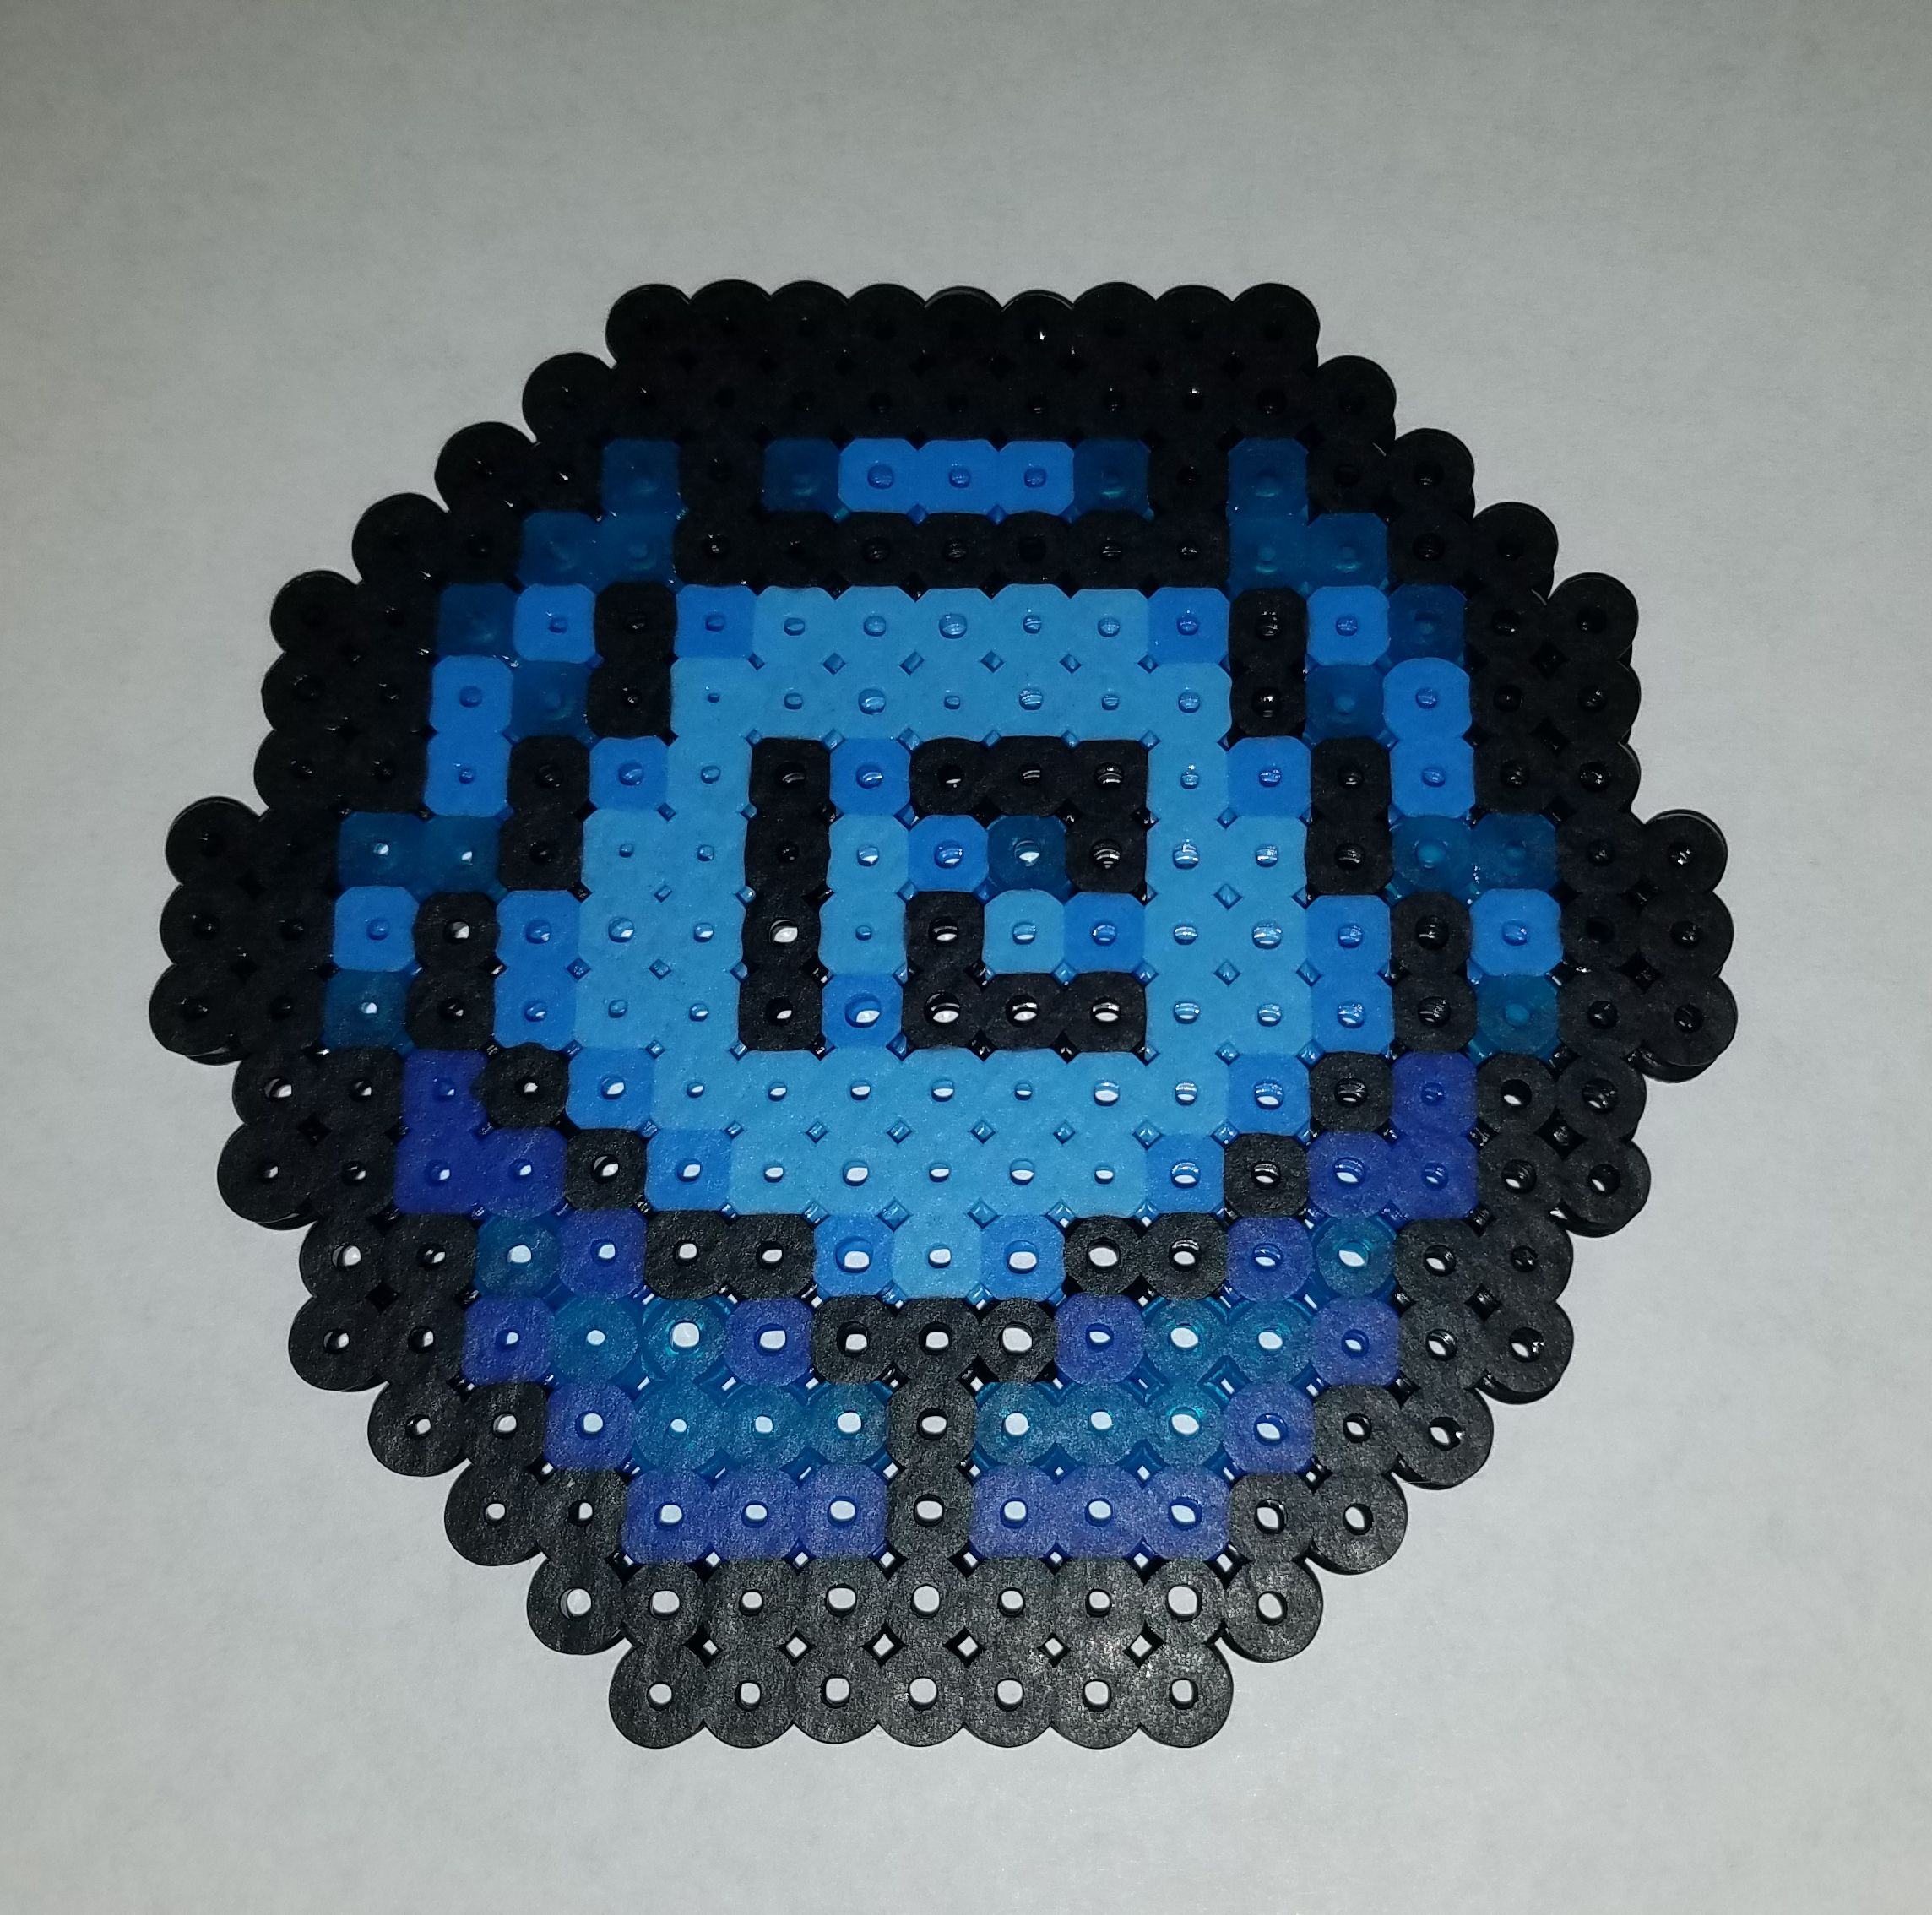 D12 - Item From The Binding Of Isaac